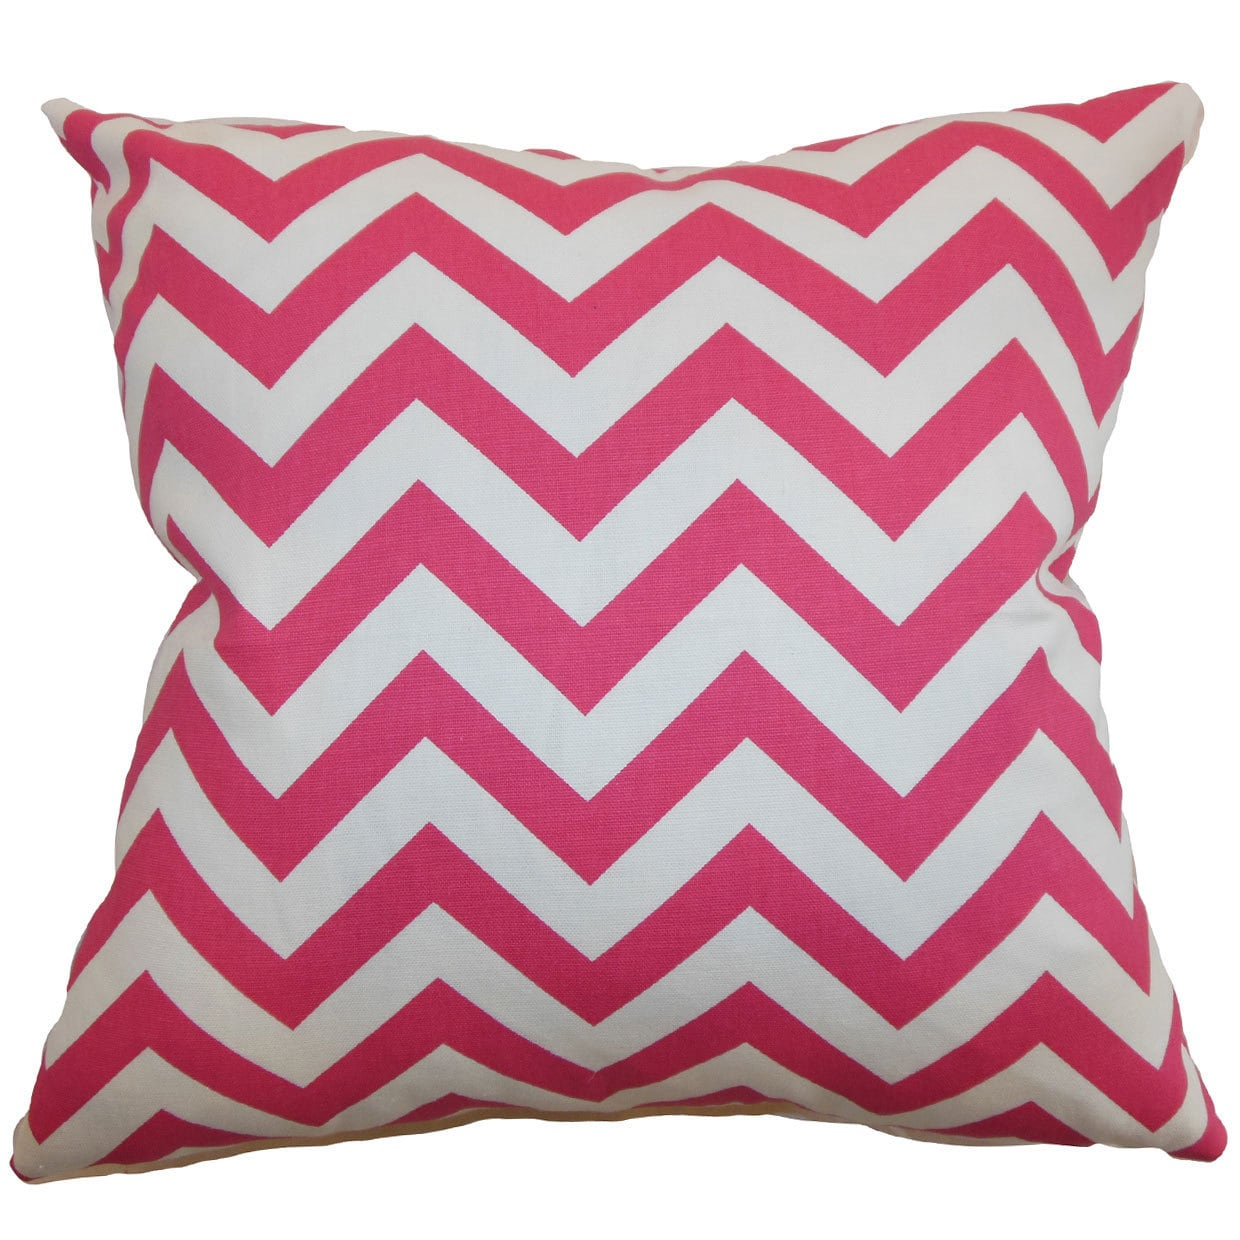 The Pillow Collection Xayabury Zigzag Blue Down Filled Throw Pillow Decorative Pillows Inserts Covers Home Kitchen